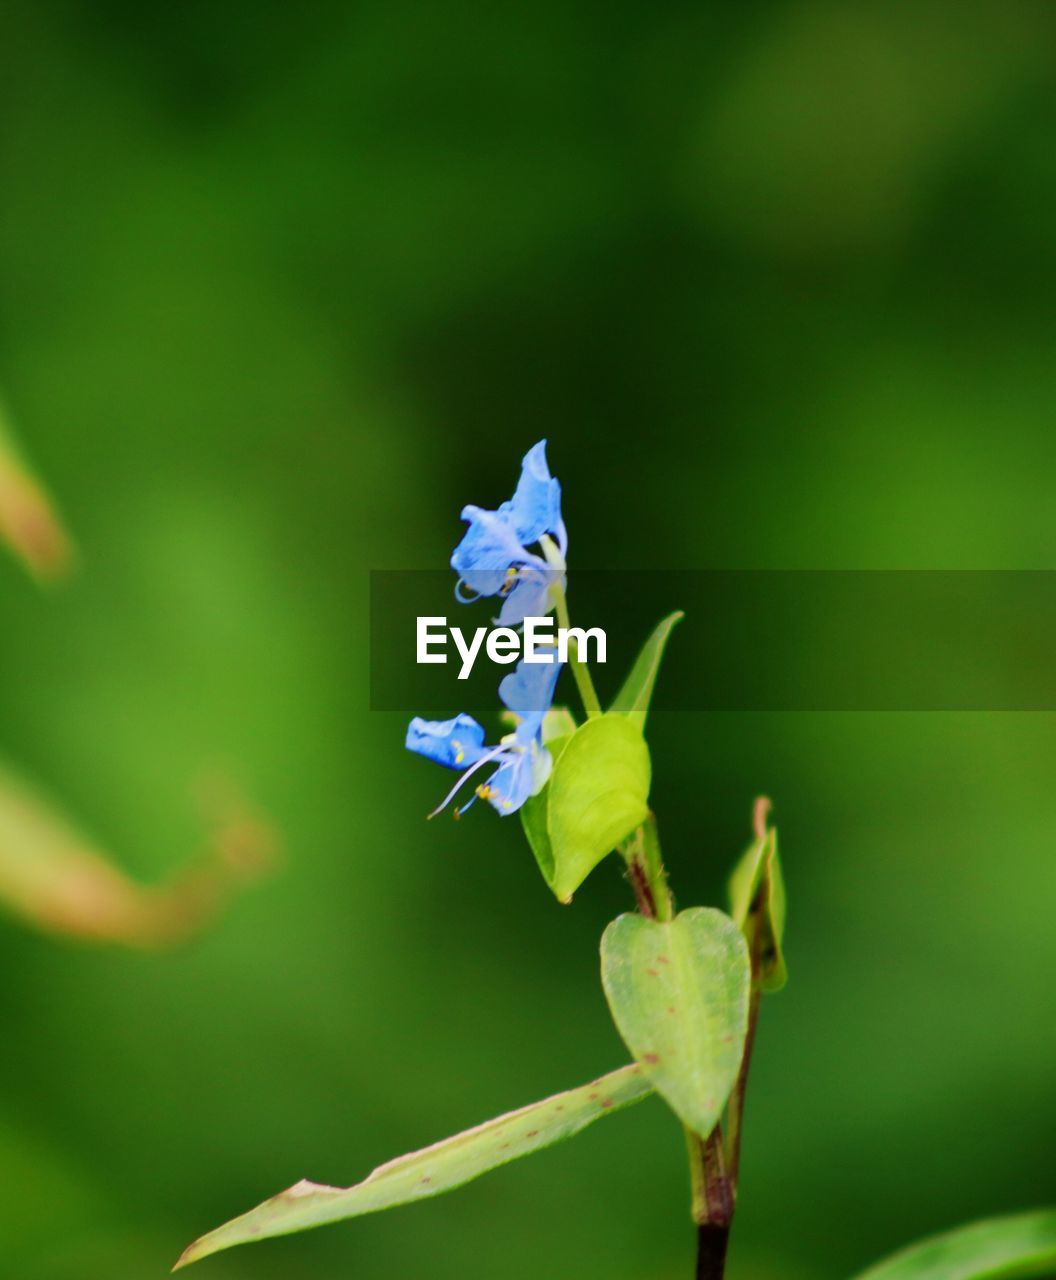 nature, growth, plant, flower, fragility, no people, beauty in nature, green color, day, outdoors, leaf, close-up, animal themes, one animal, animals in the wild, freshness, flower head